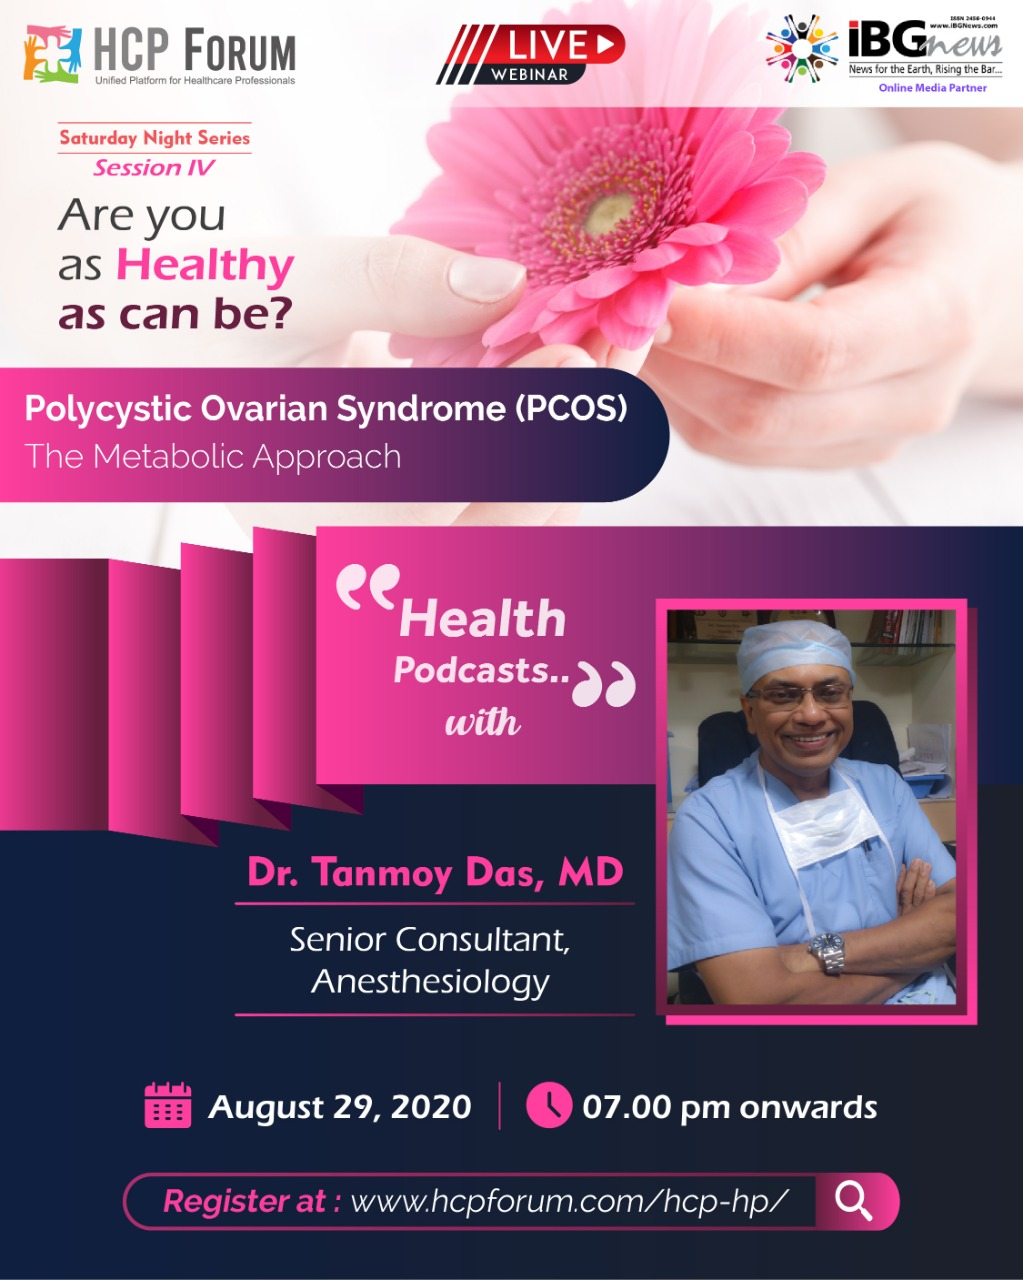 HCPForum - PCOS Talk with Dr. Tanmoy Das